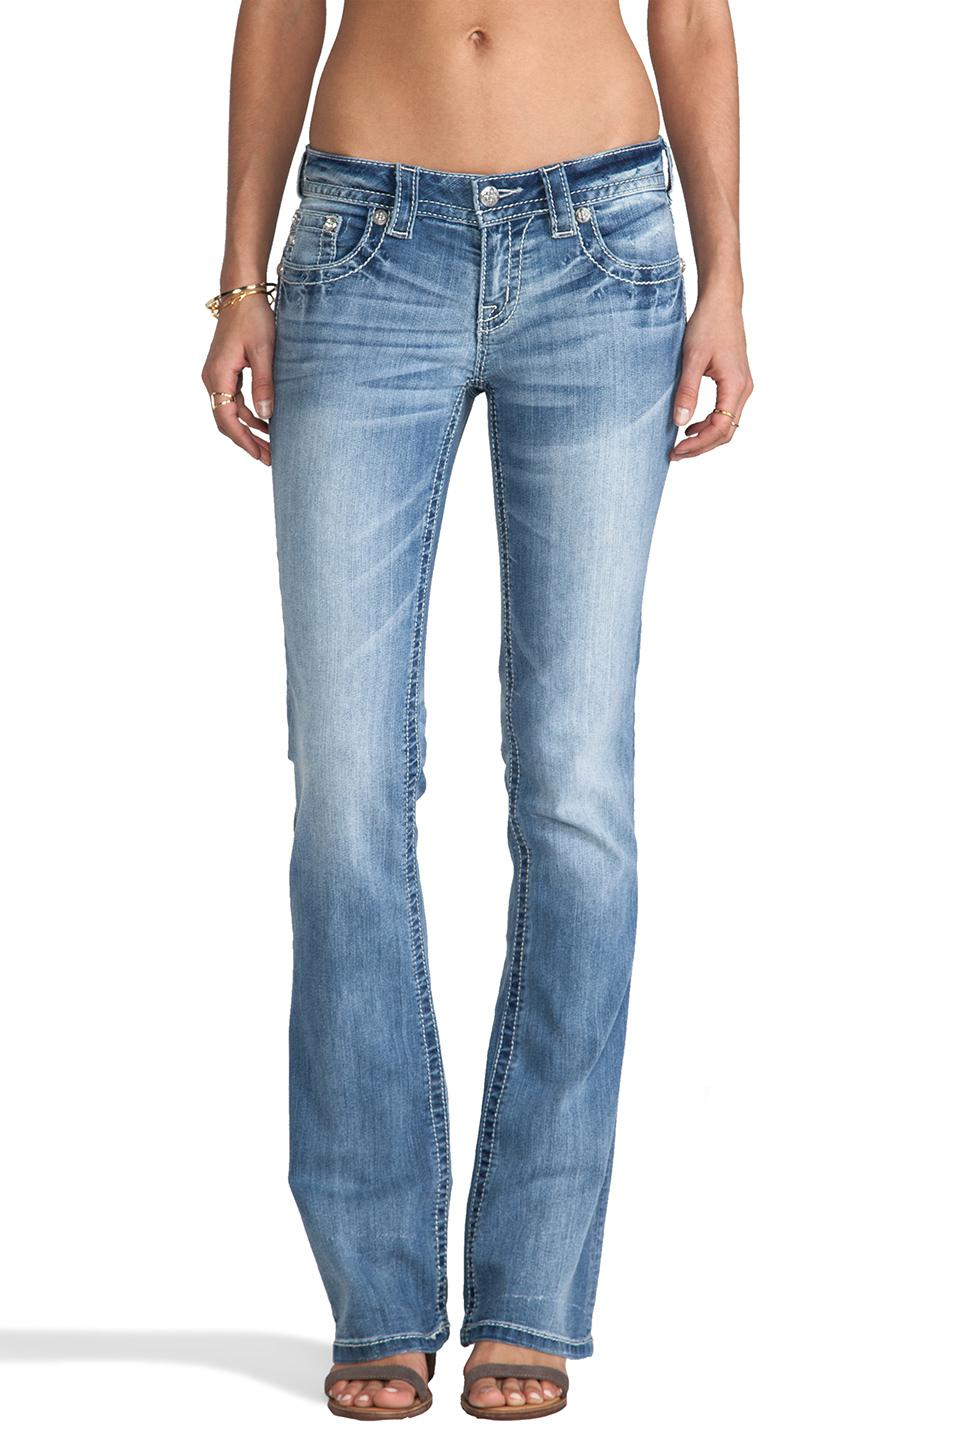 600-Miss-Me-Jeans-Bootcut-for-Women-1